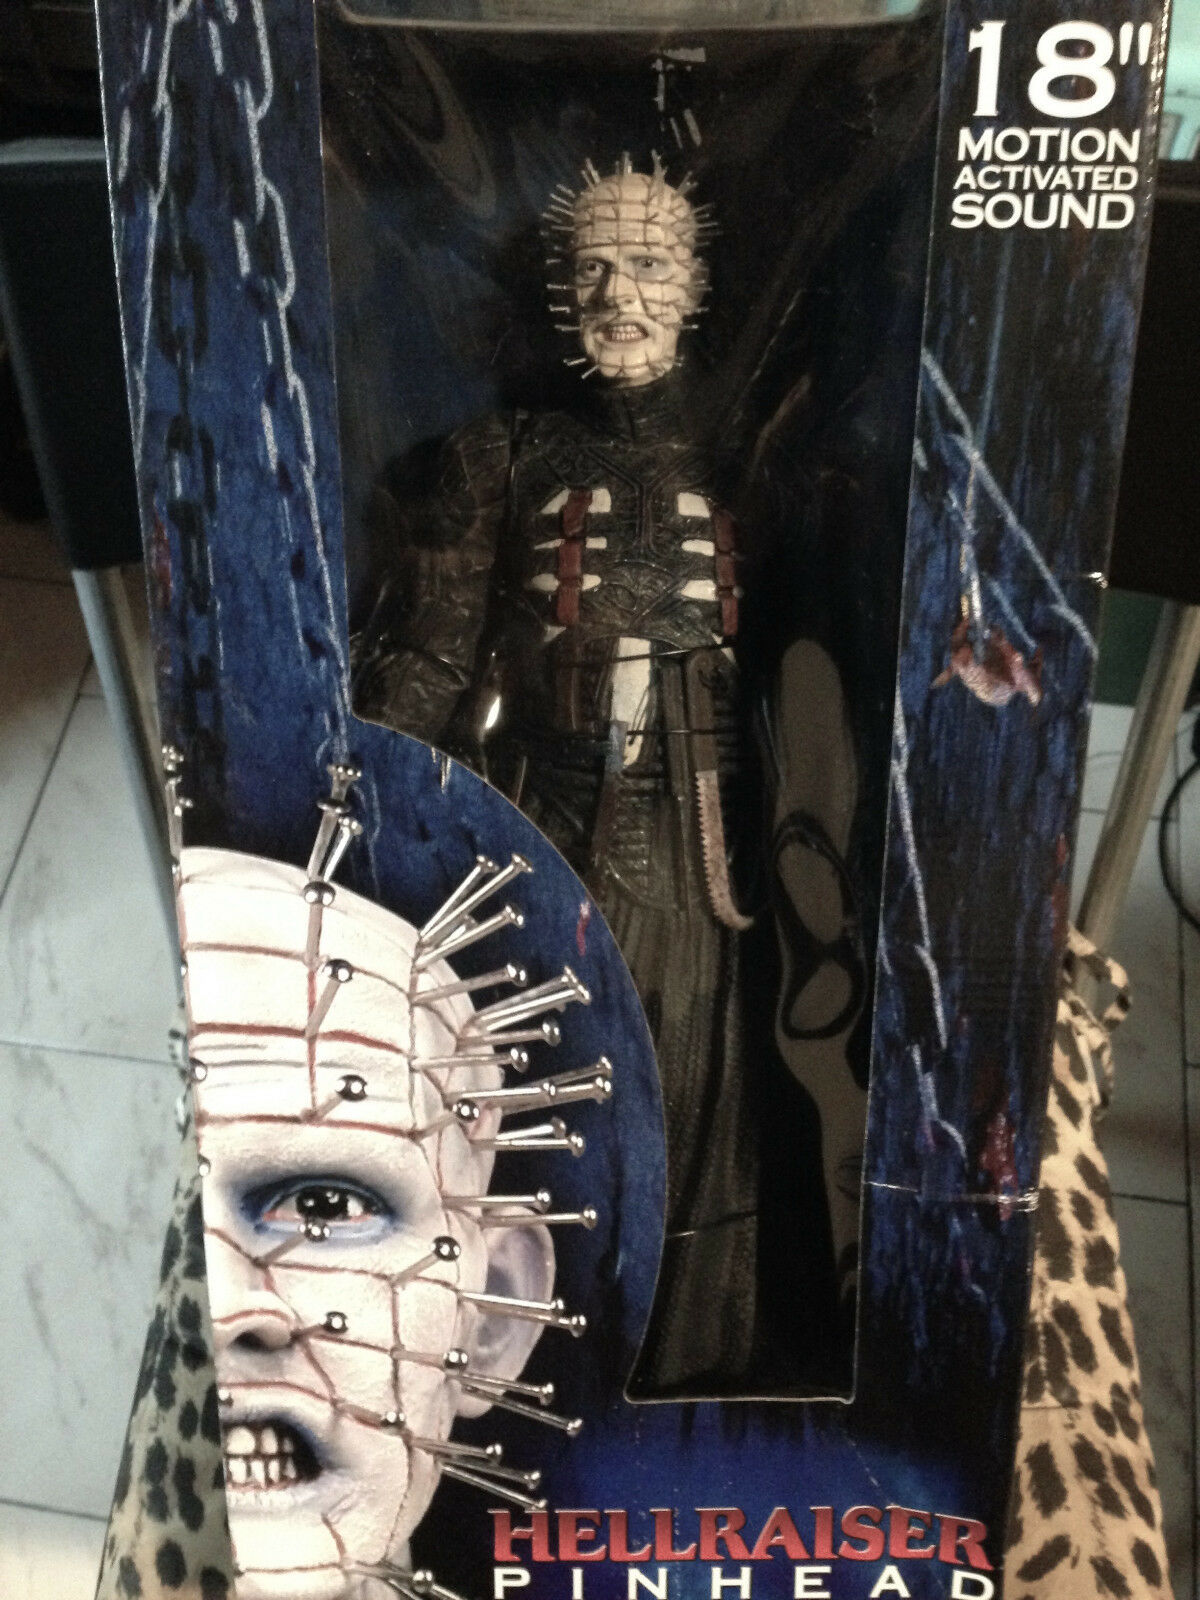 HELLRAISER PINHEAD 18  Figura MOTION ACTIVATED SOUND NEW SEALEAD BY NECA